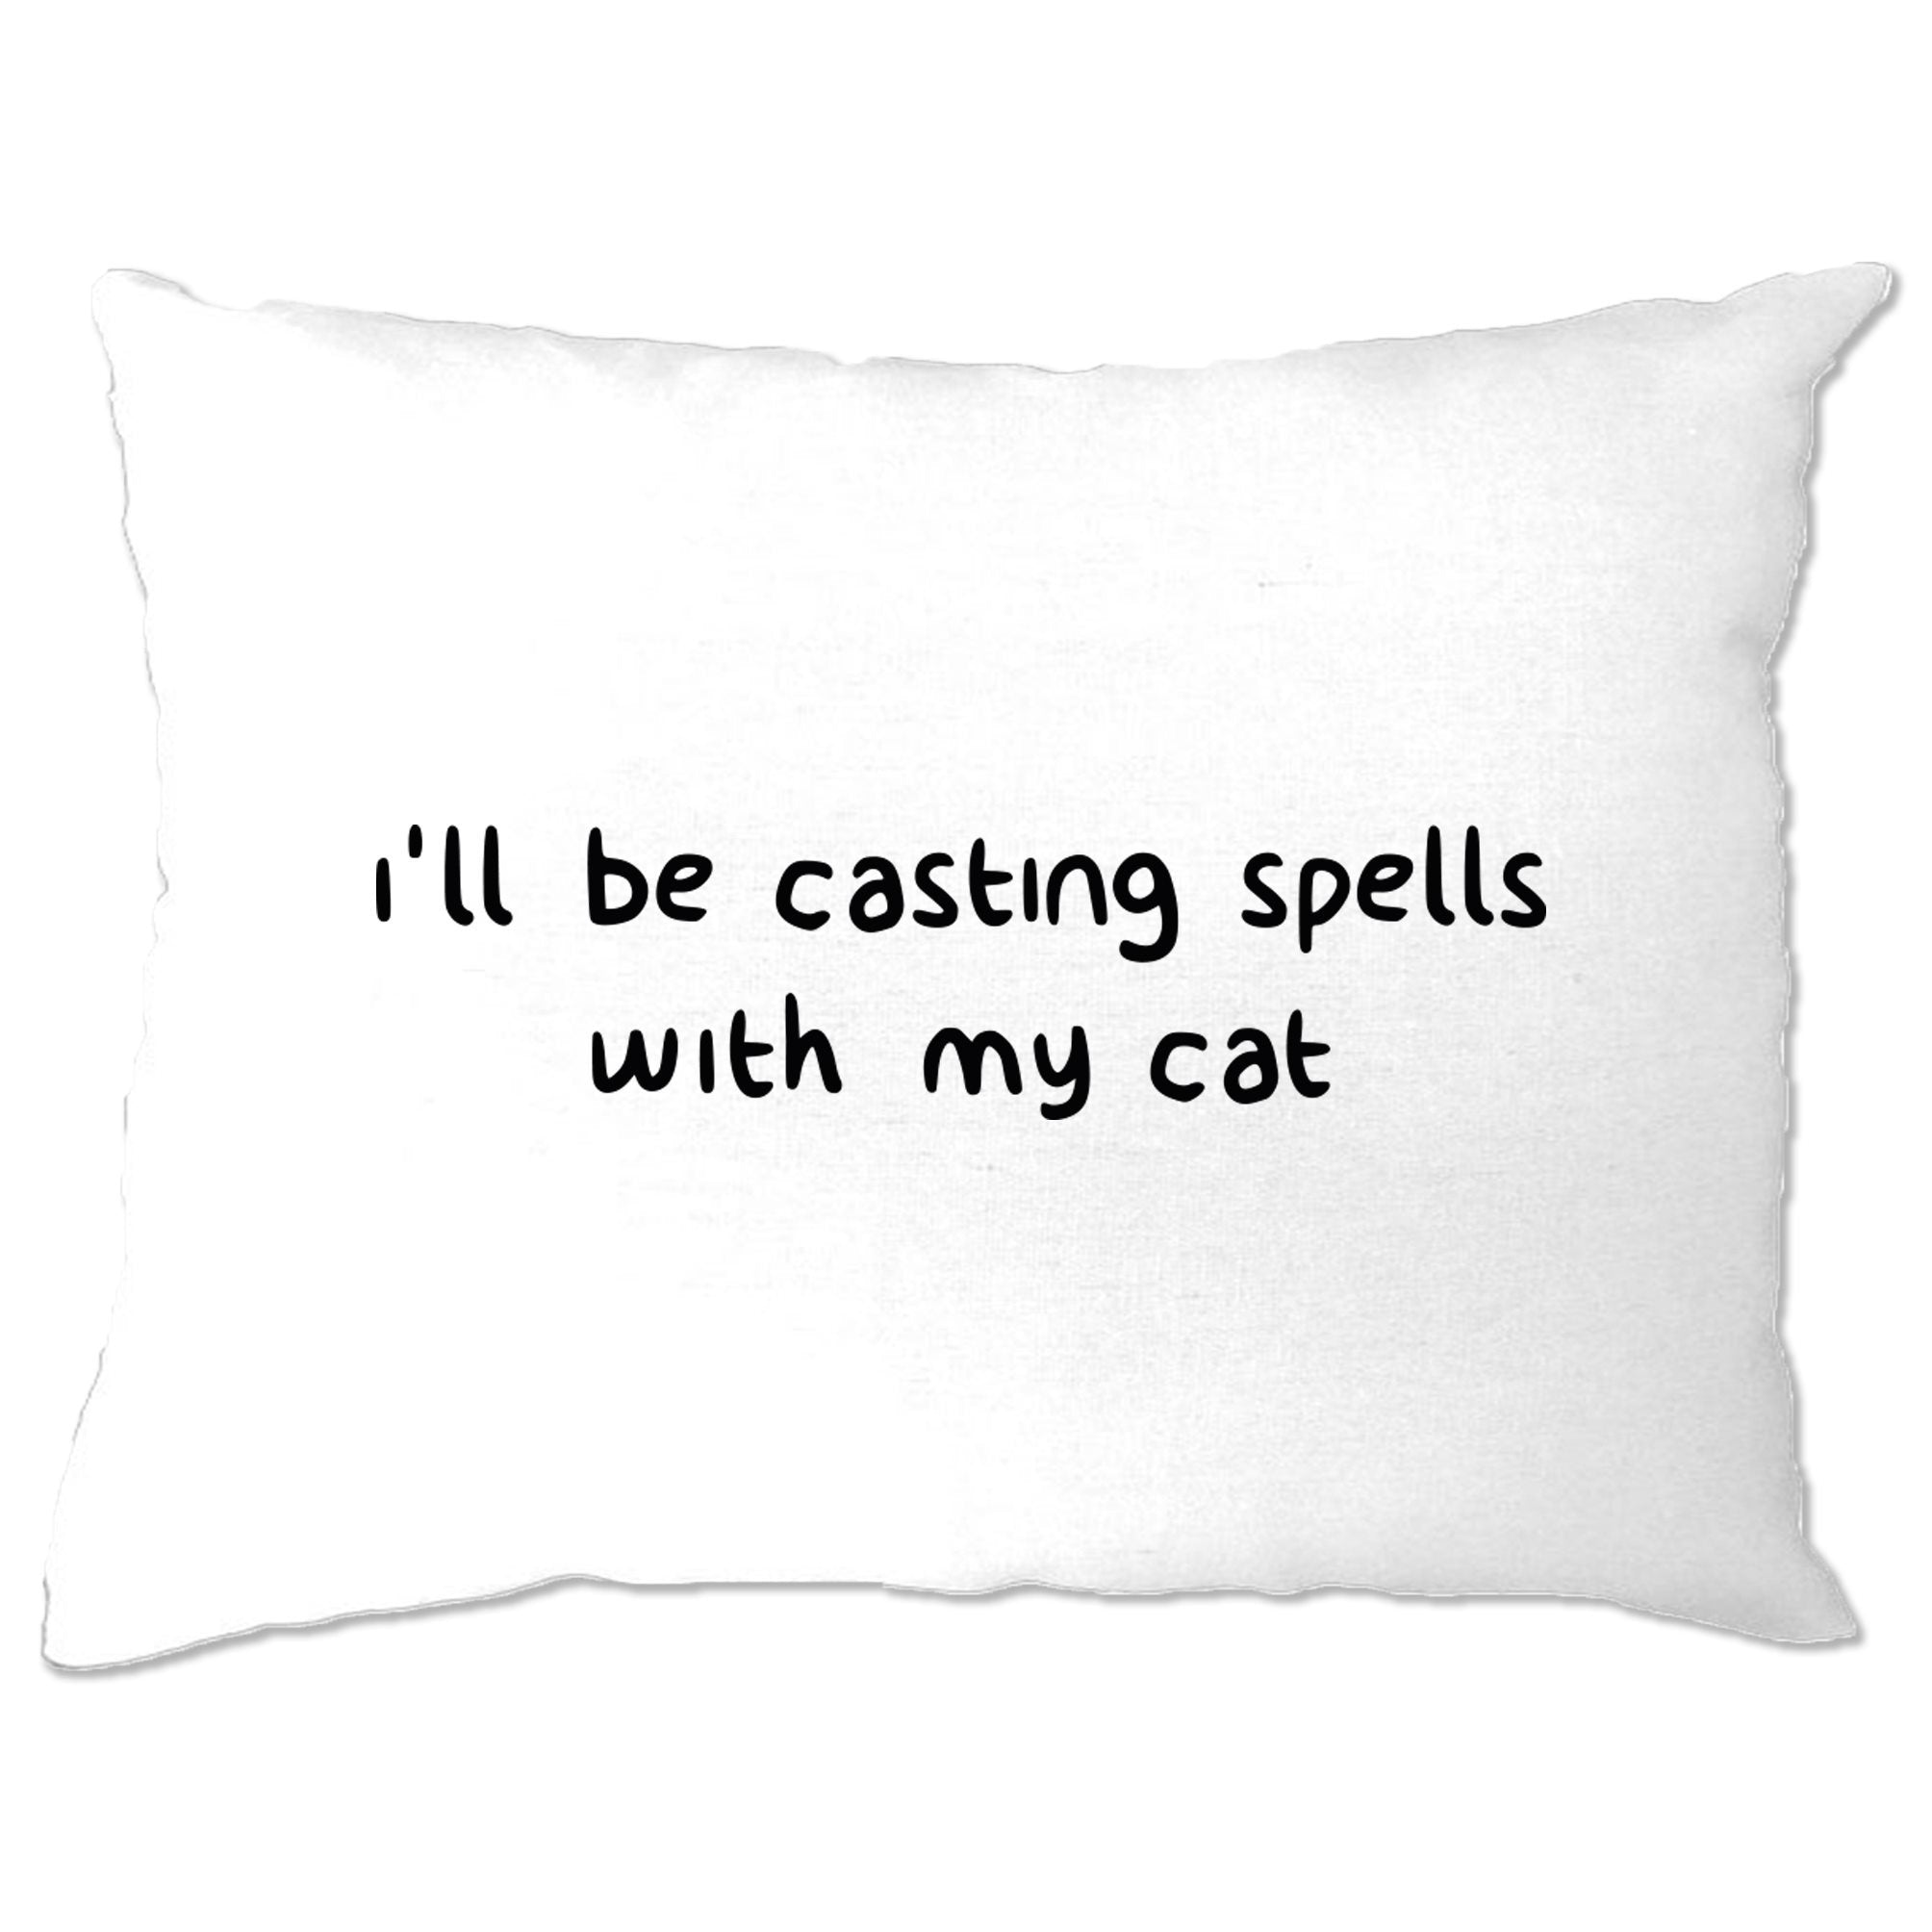 Halloween Pillow Case I'll Be Casting Spells With My Cat